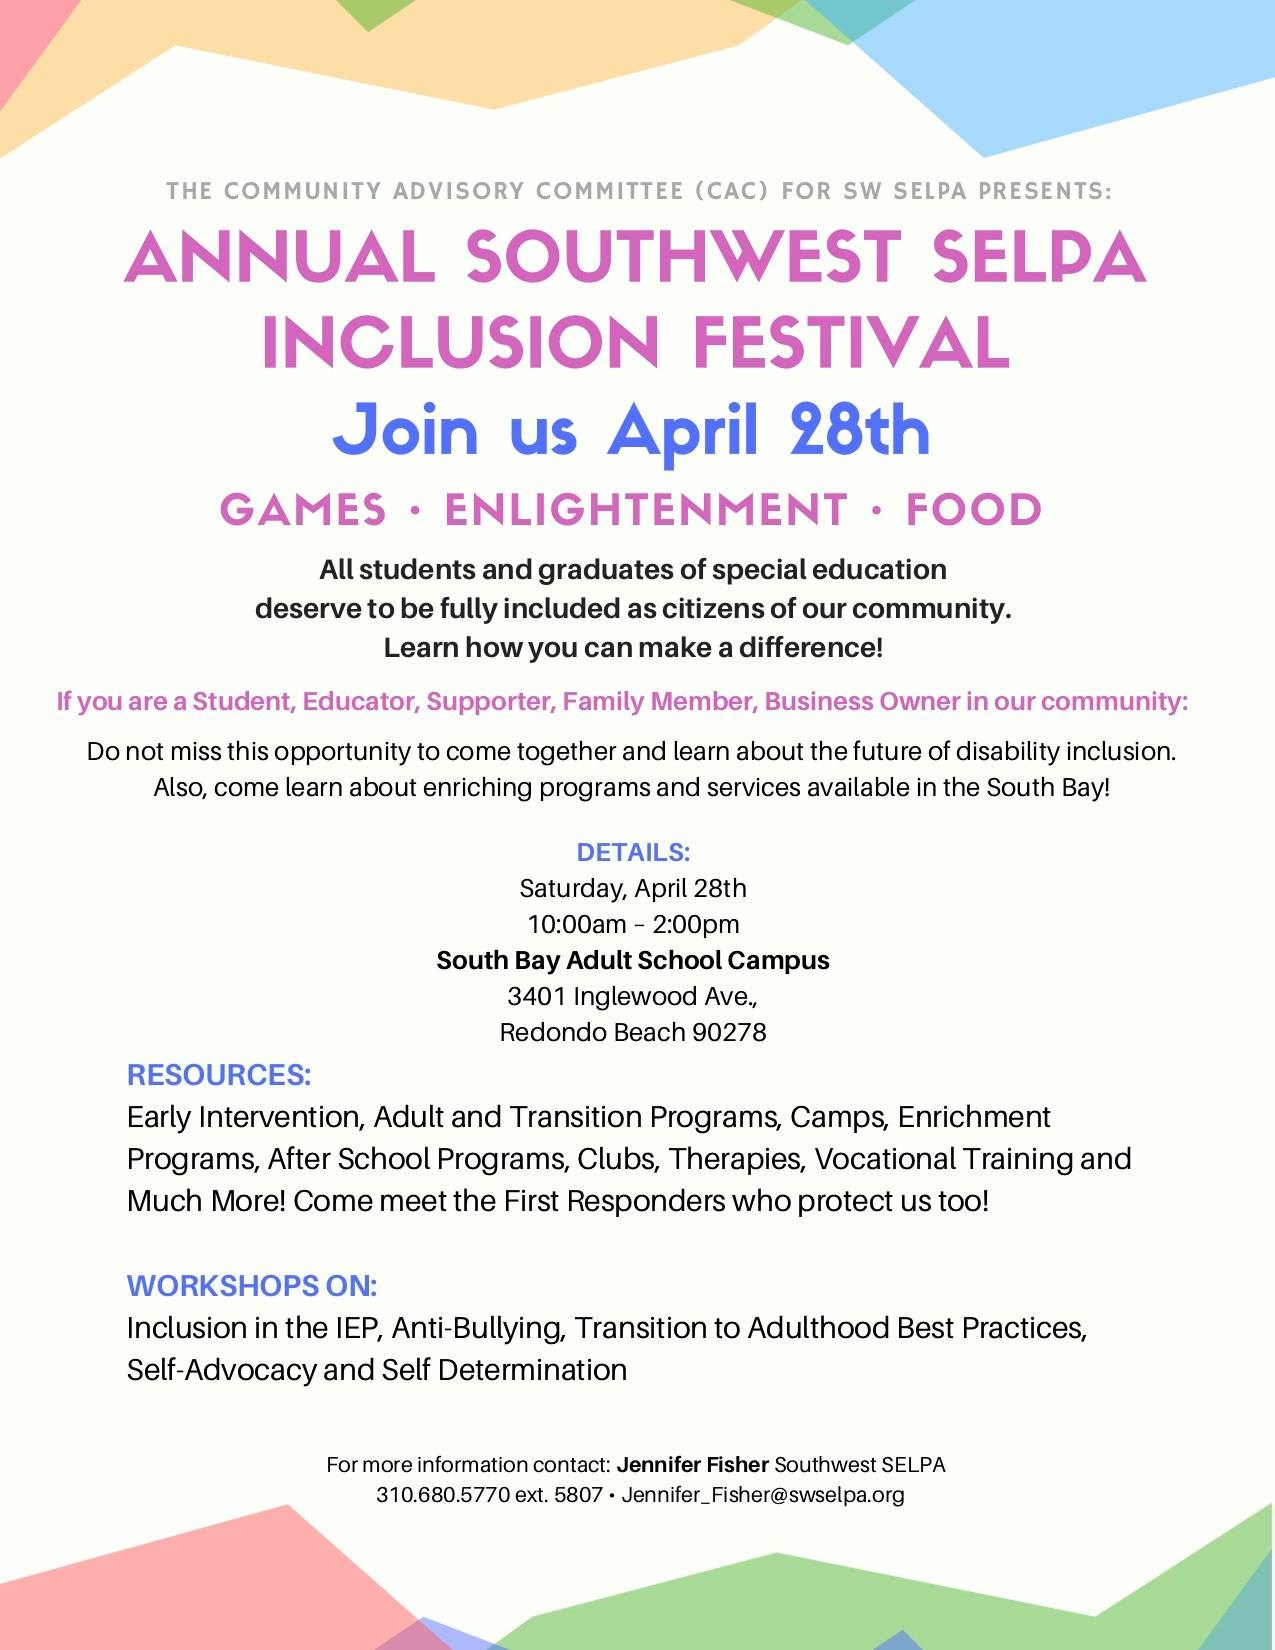 SW SELPA Festival of Inclusion